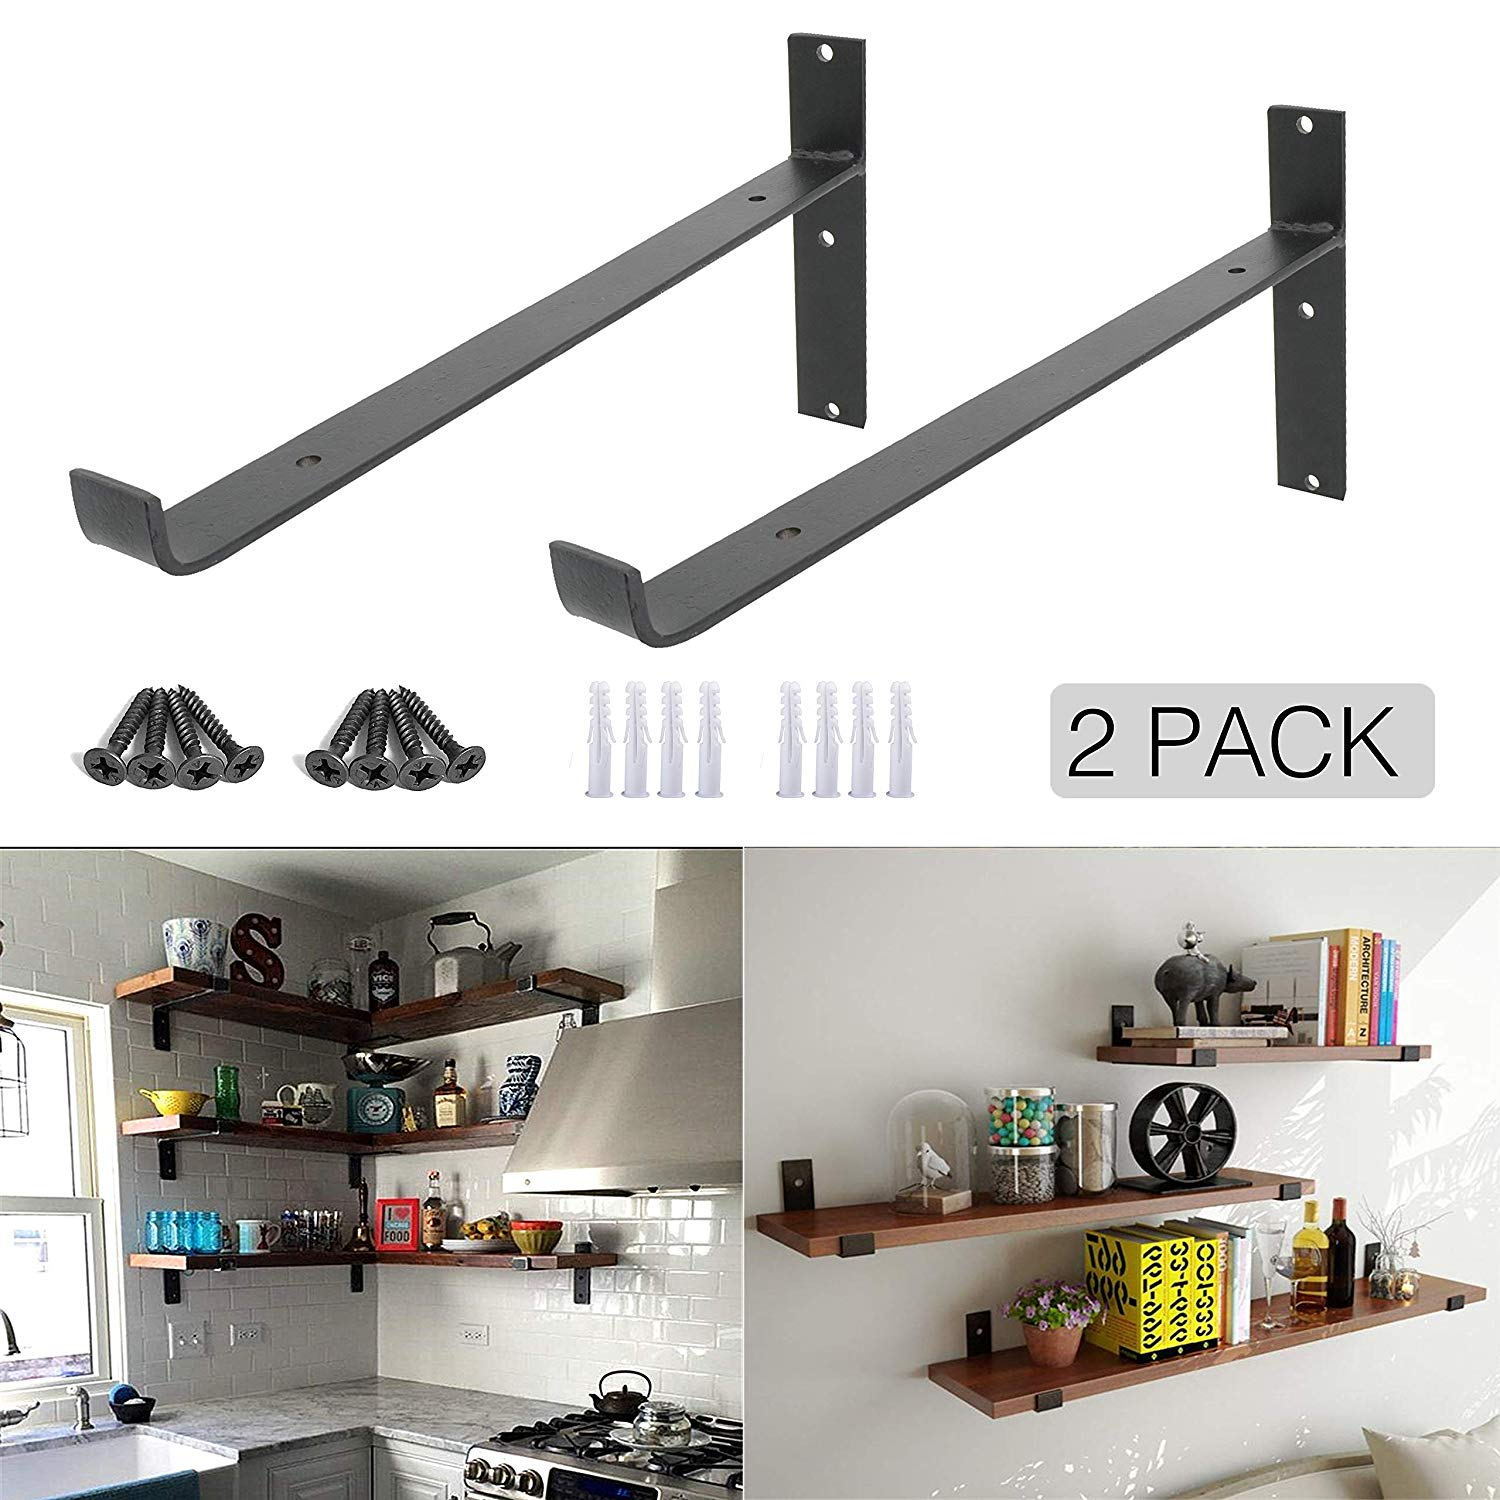 ovov pack iron shelf brackets decorative wall floating hangers mounted hanging angle lip black home improvement dish storage cabinet corner ladder oak laundry shelves garage